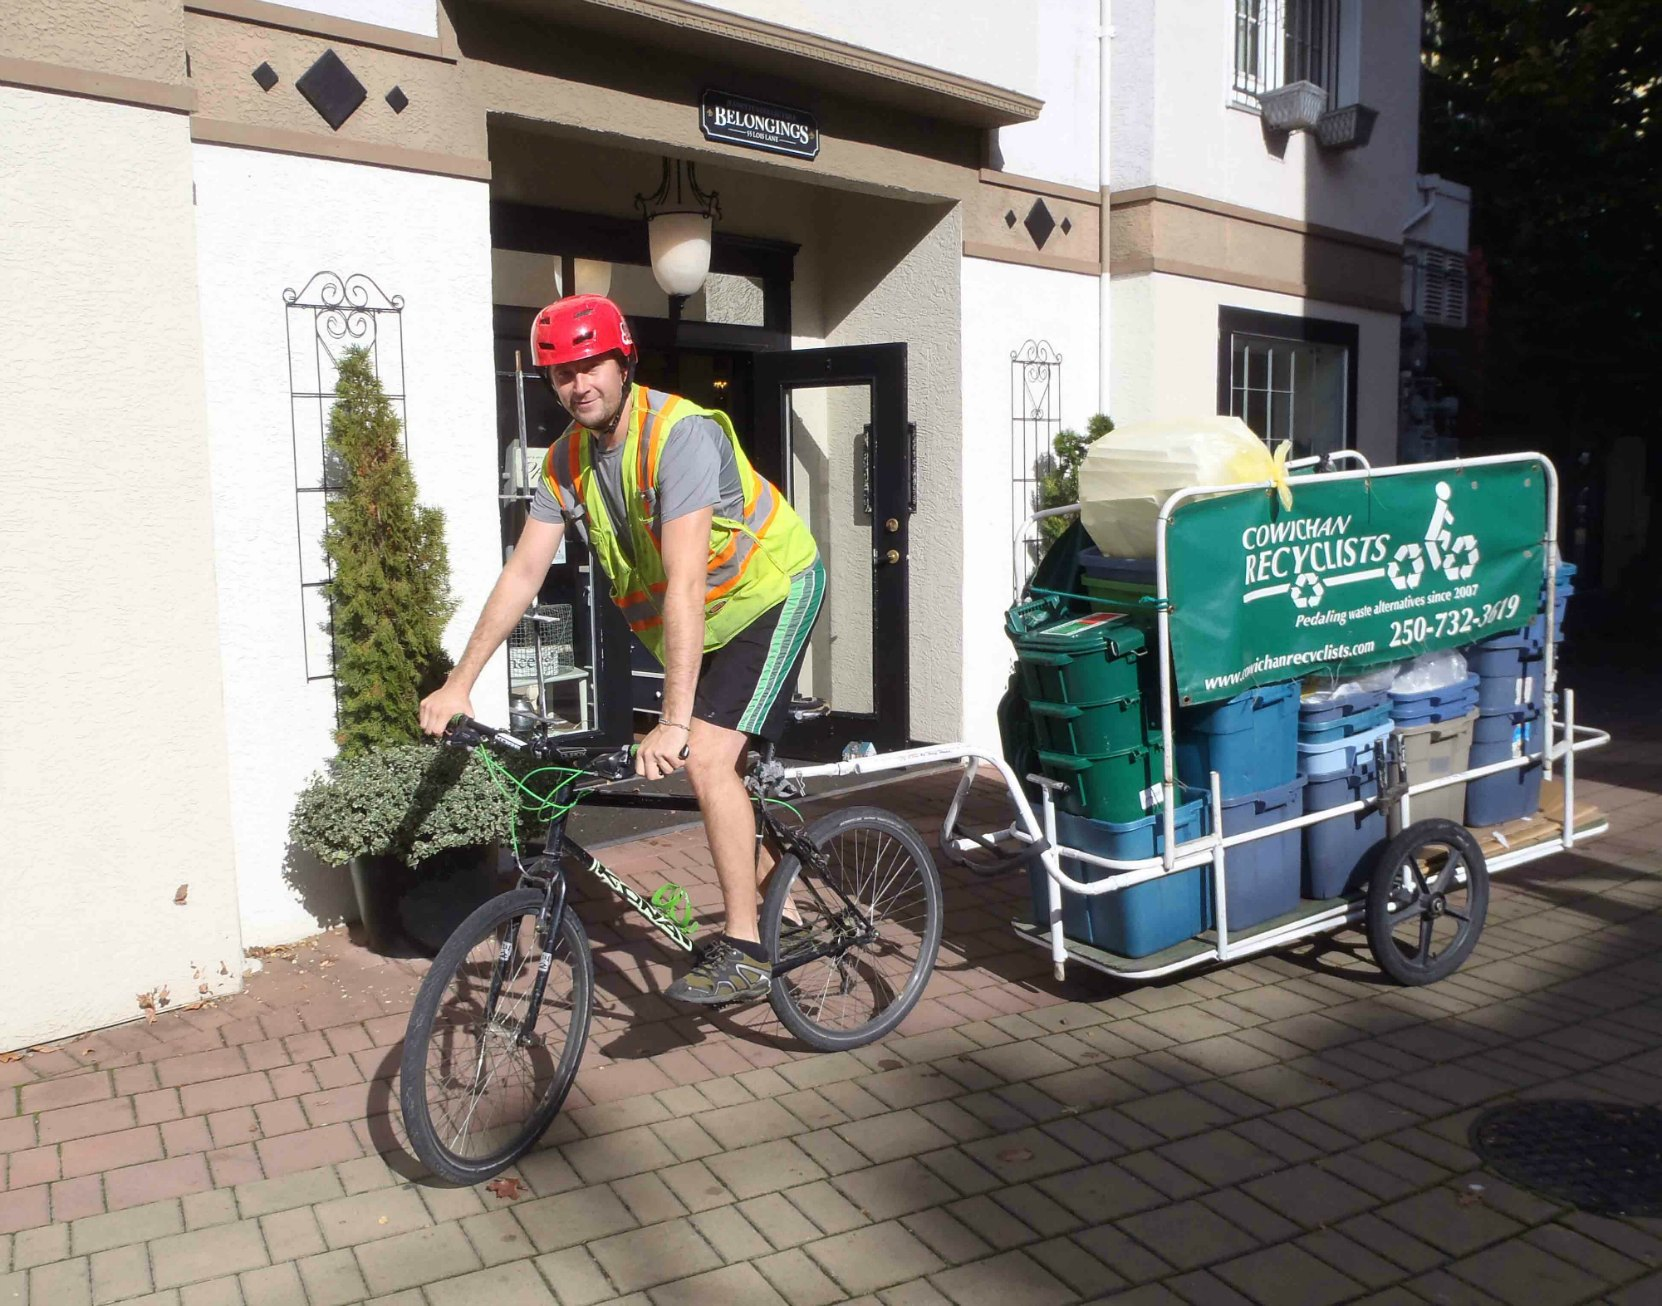 A bicyclist towing a Cowichan Recyclists bike trailer while doing the rounds in downtown Duncan